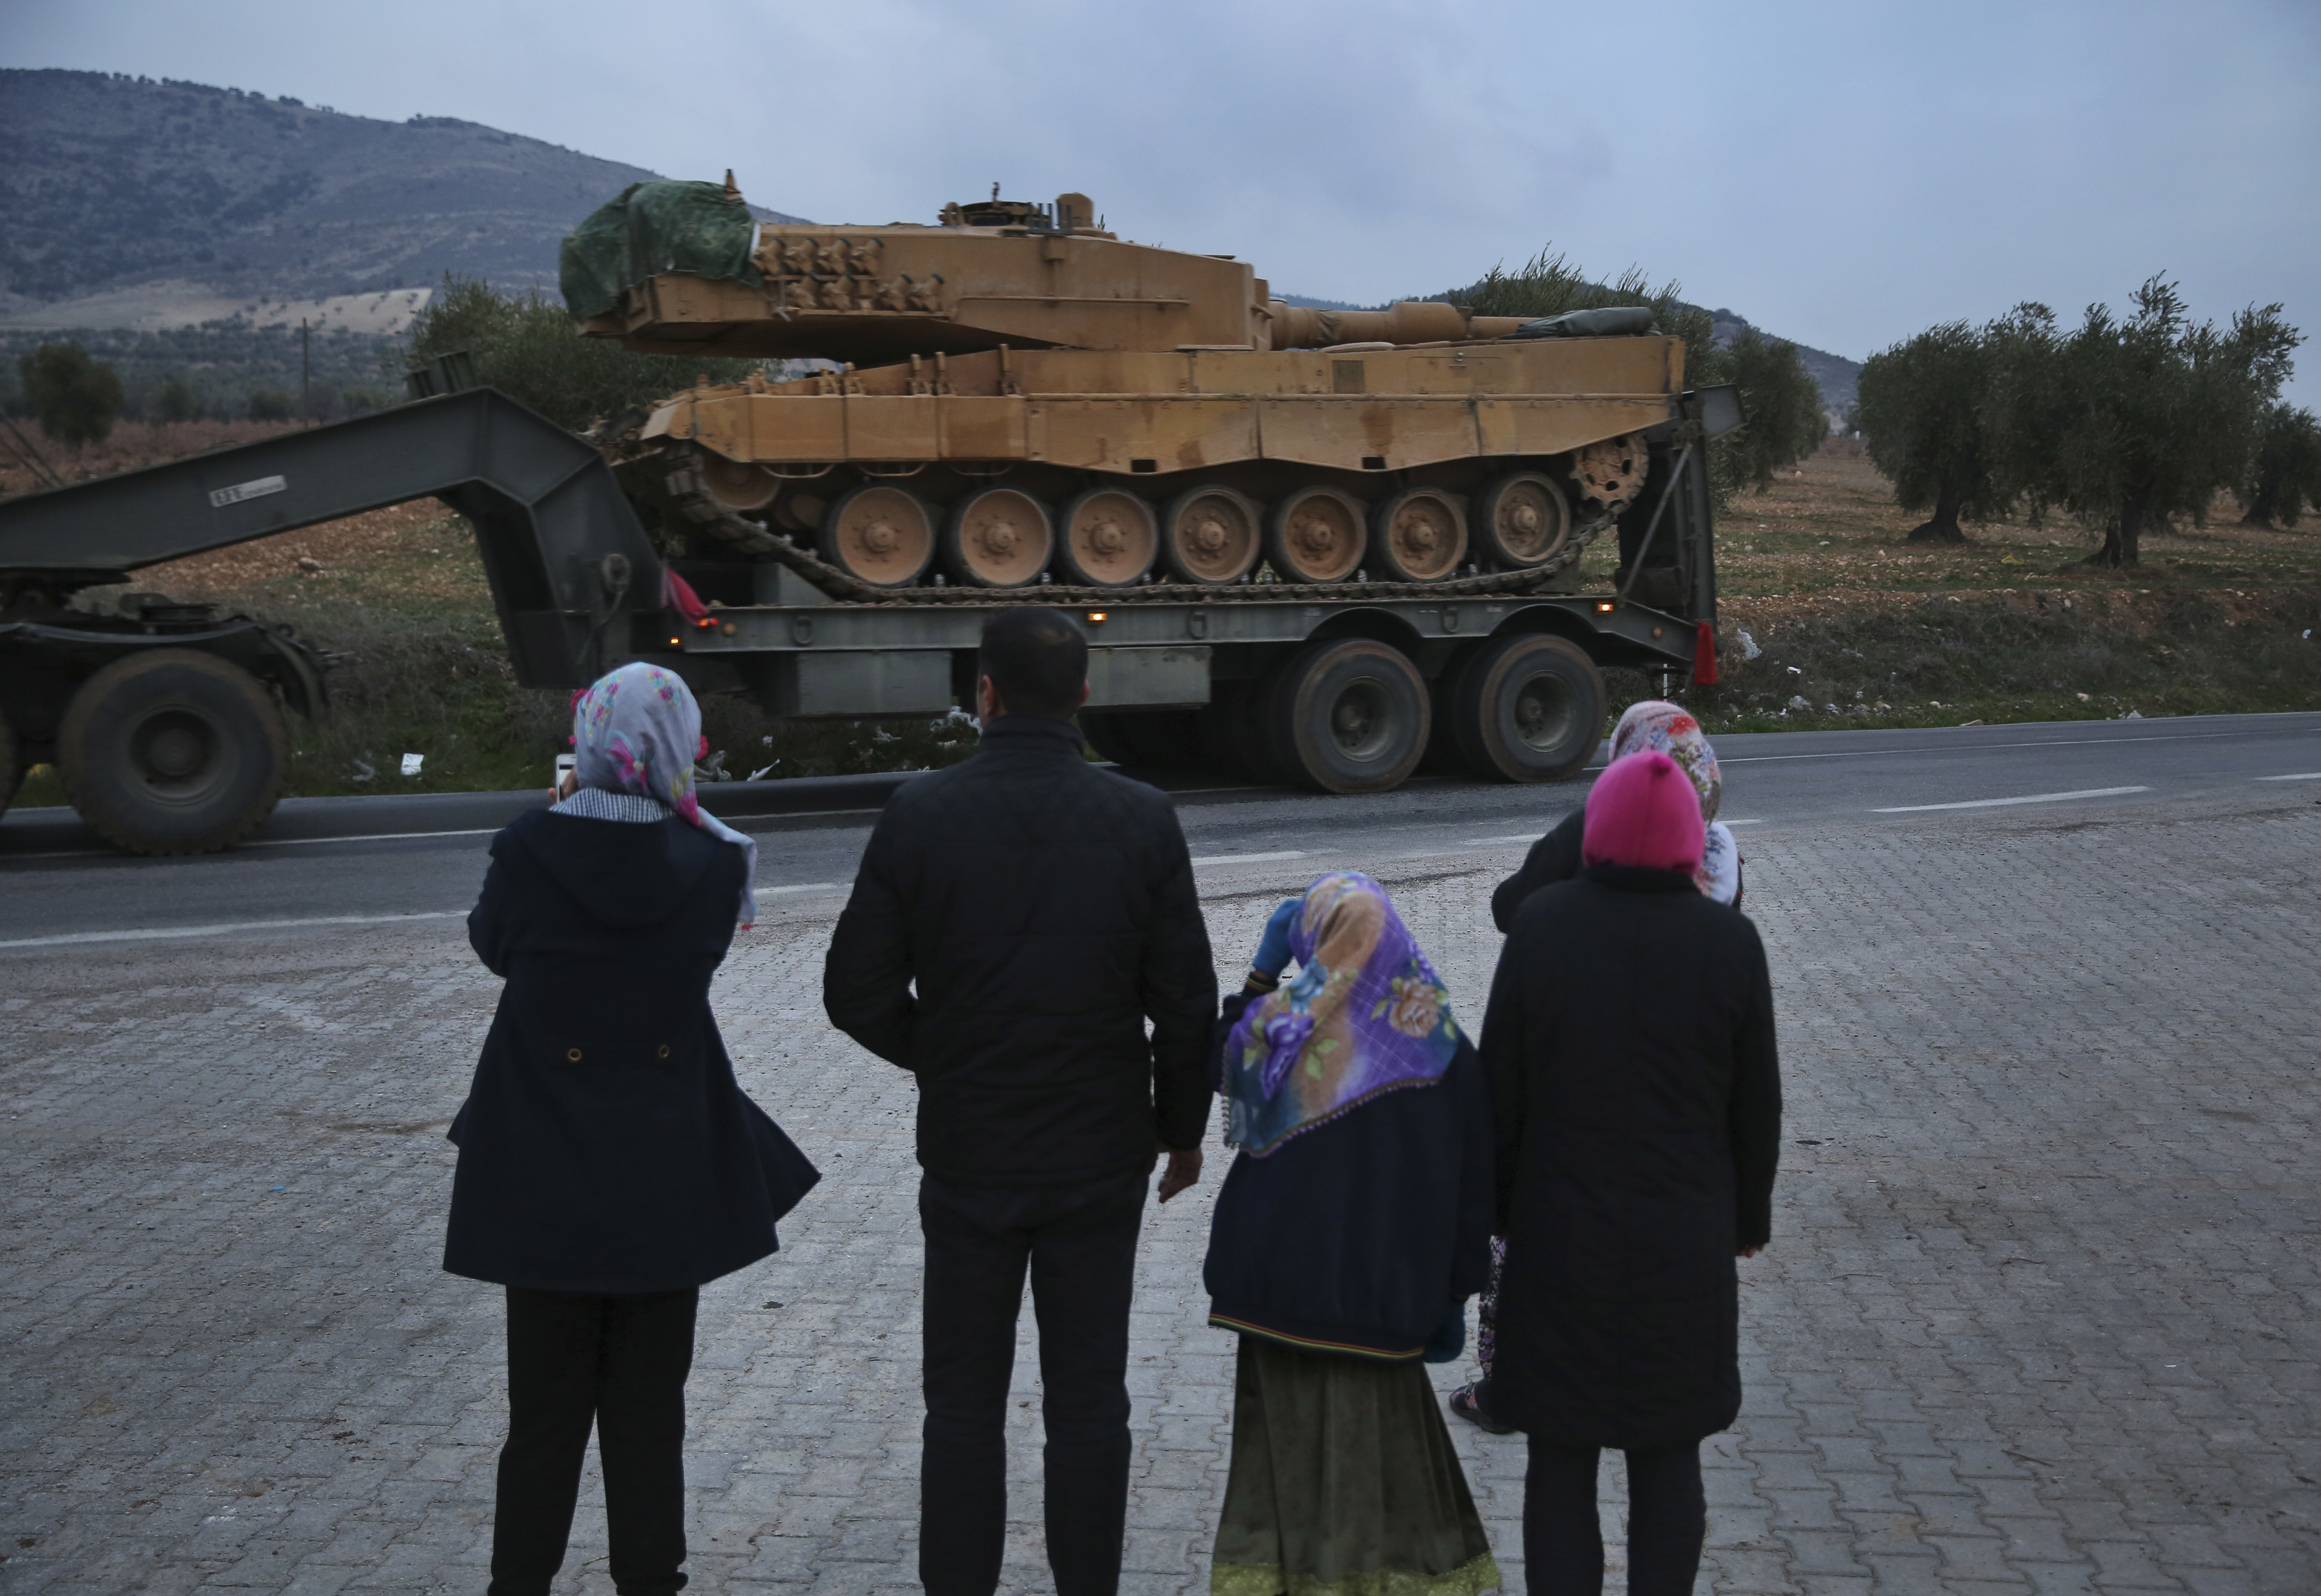 Residents watch as a truck, part of a convoy, transporting a Turkish army tank is driven in the outskirts of the town of Kilis, Turkey, near the border with Syria (Lefteris Pitarakis/AP)